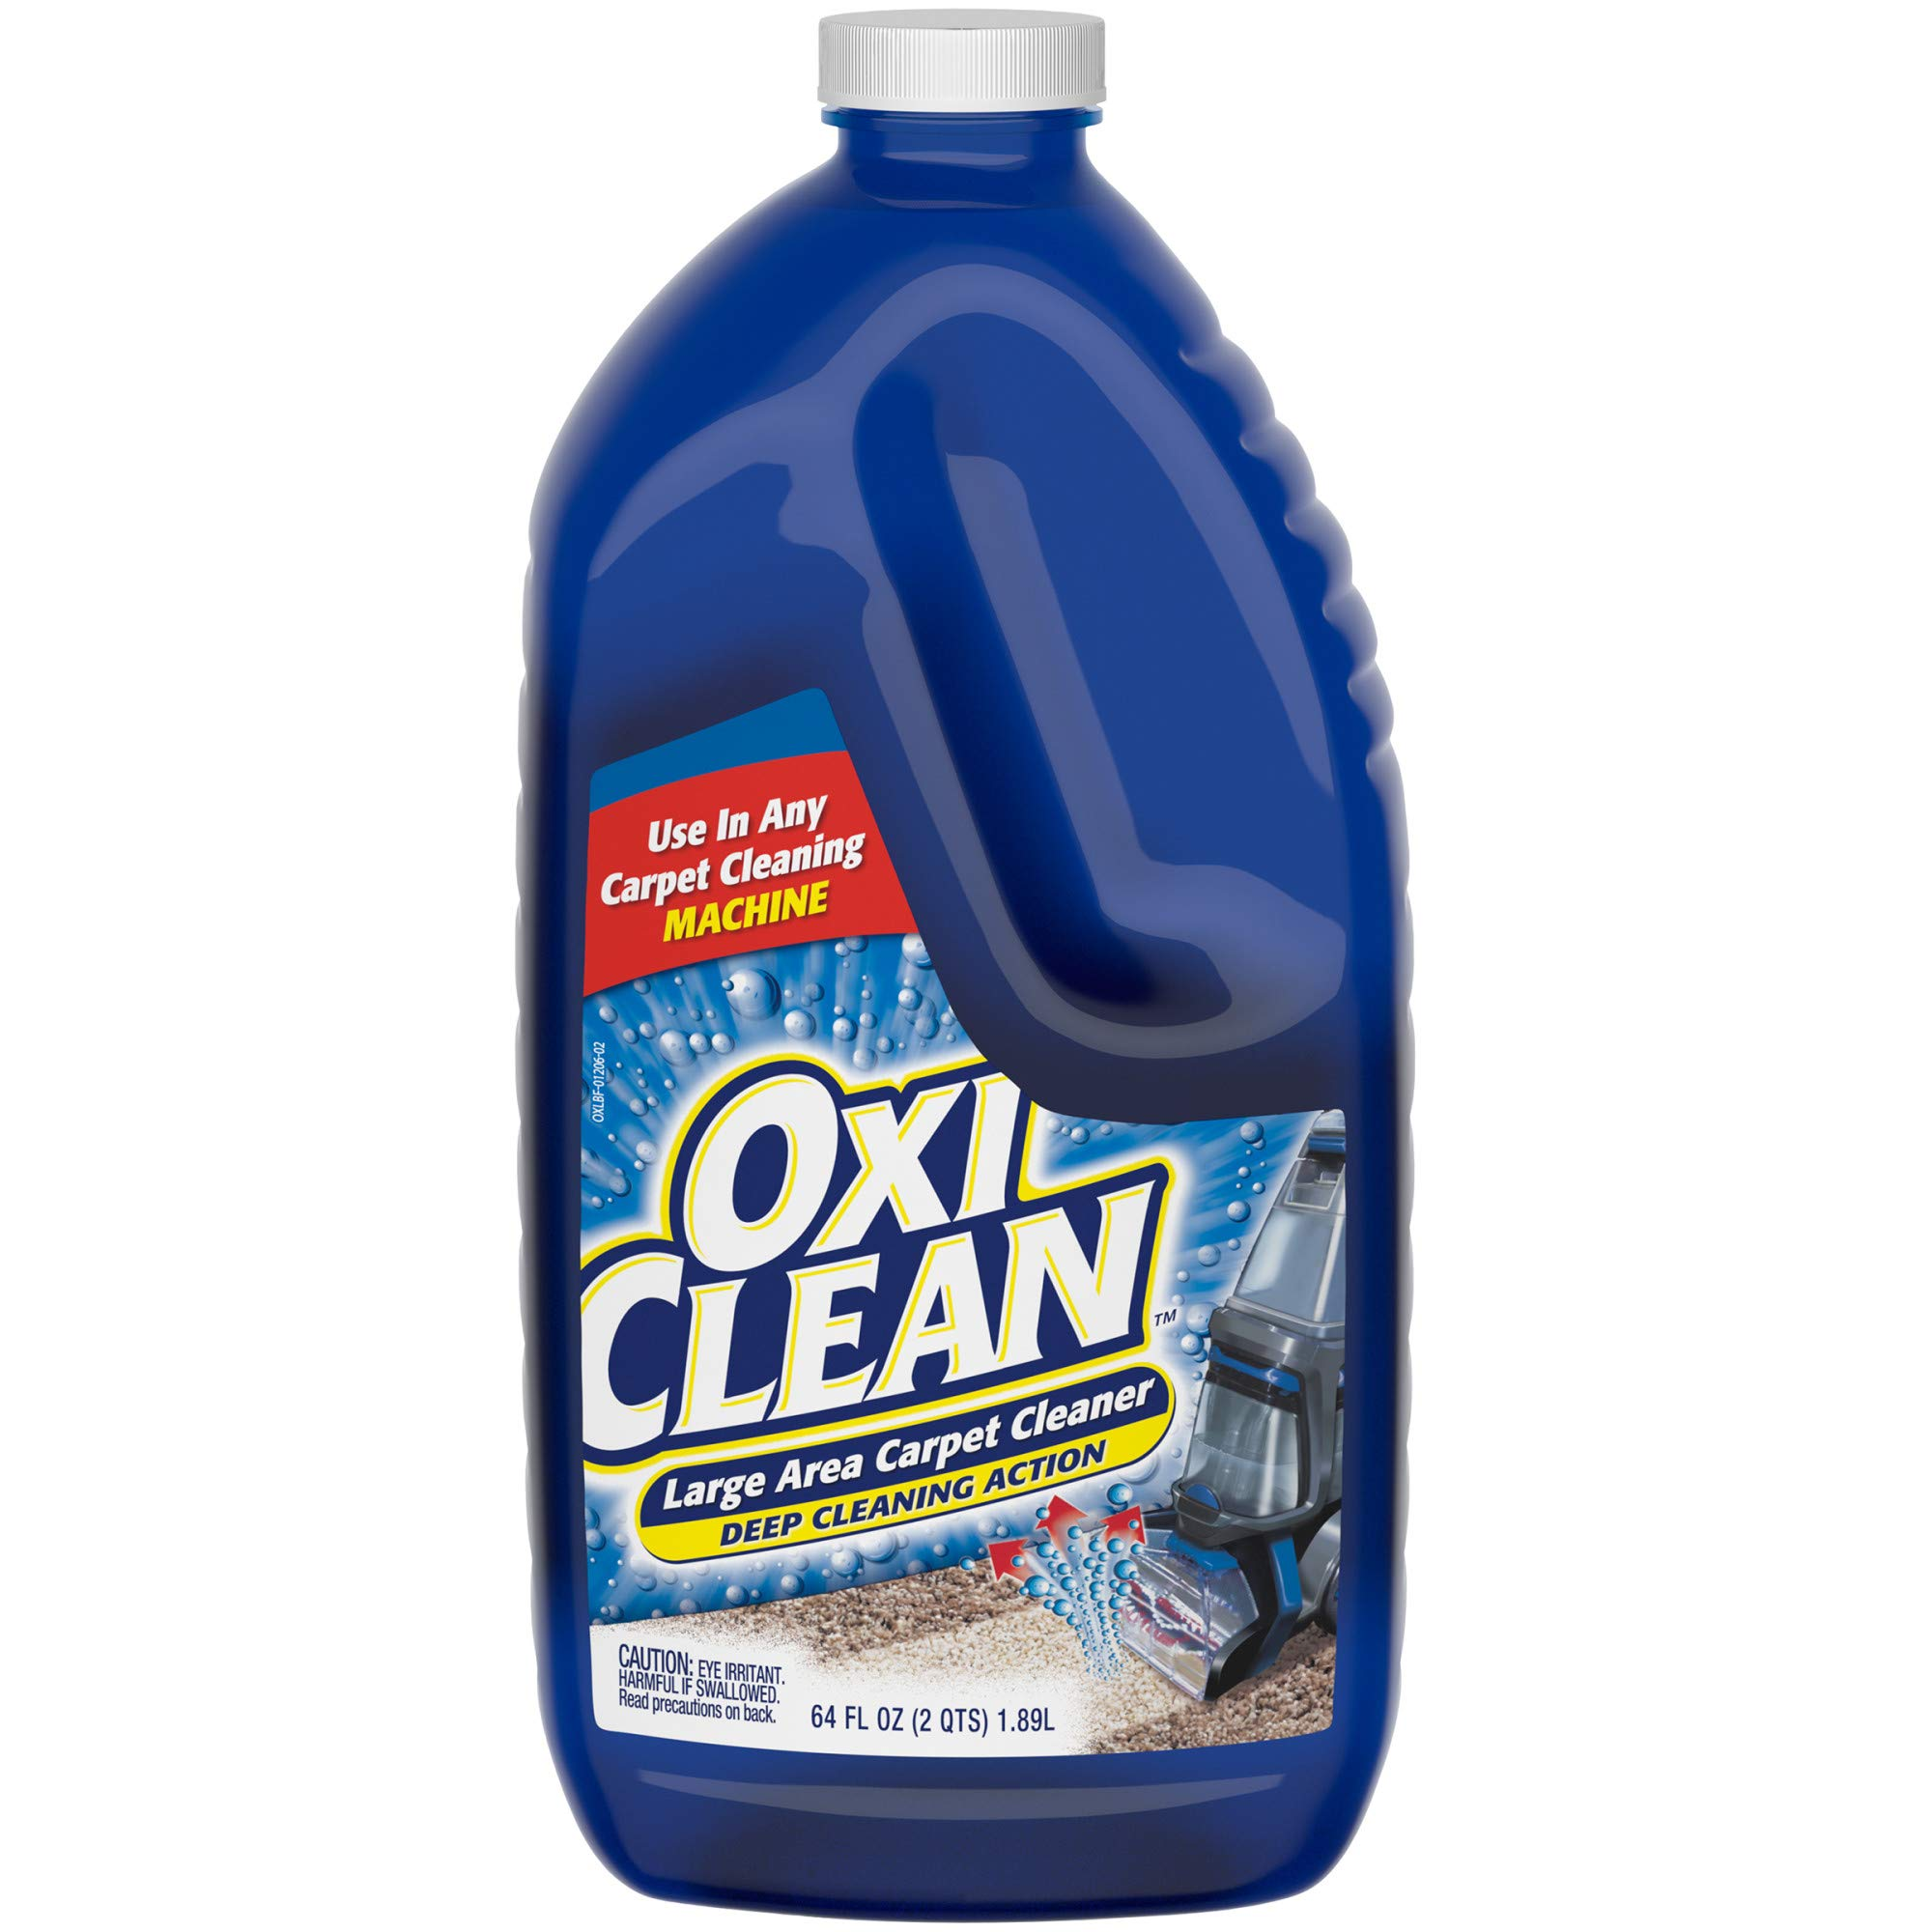 OxiClean Large Area Carpet Cleaner, 64 oz. by OxiClean